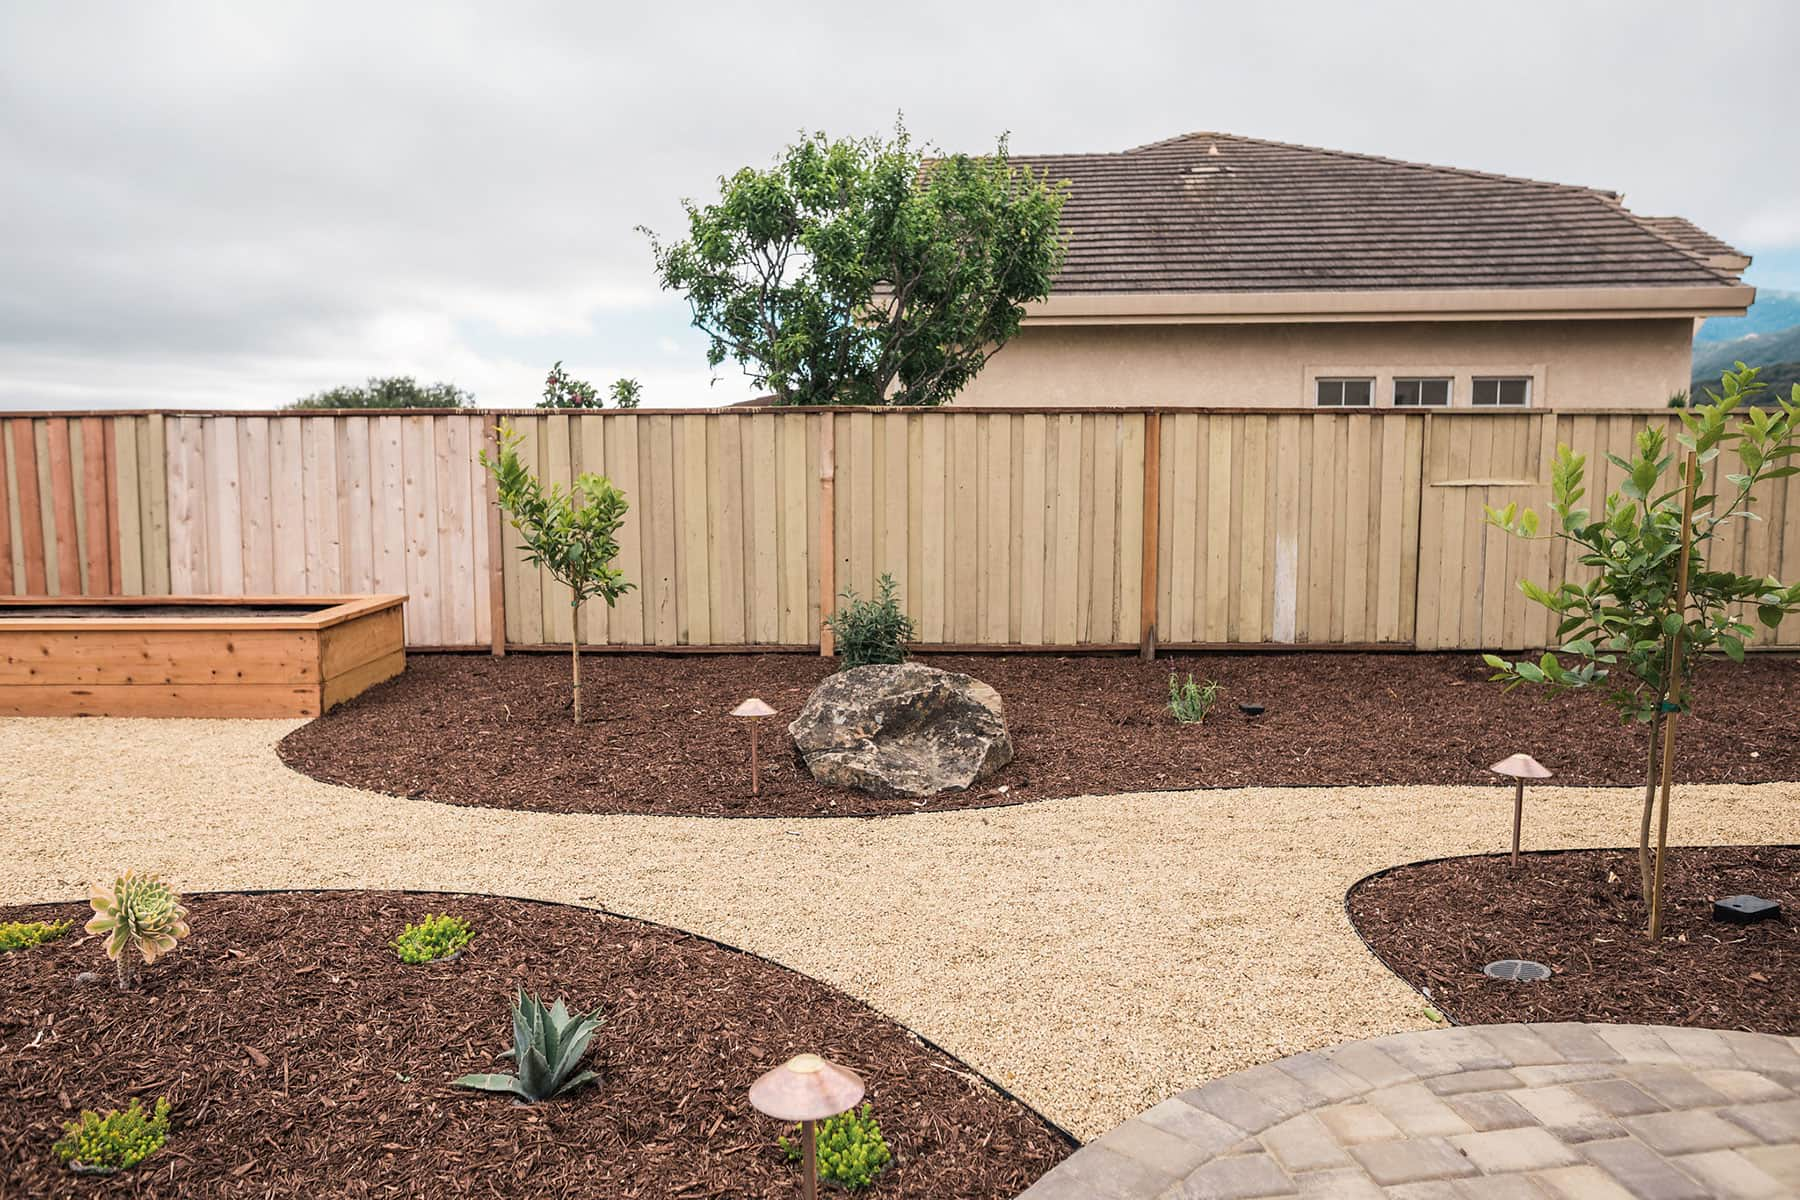 Decomposed Granite Paths and Patios - K&D Landscaping on Decomposed Granite Backyard Ideas id=17743